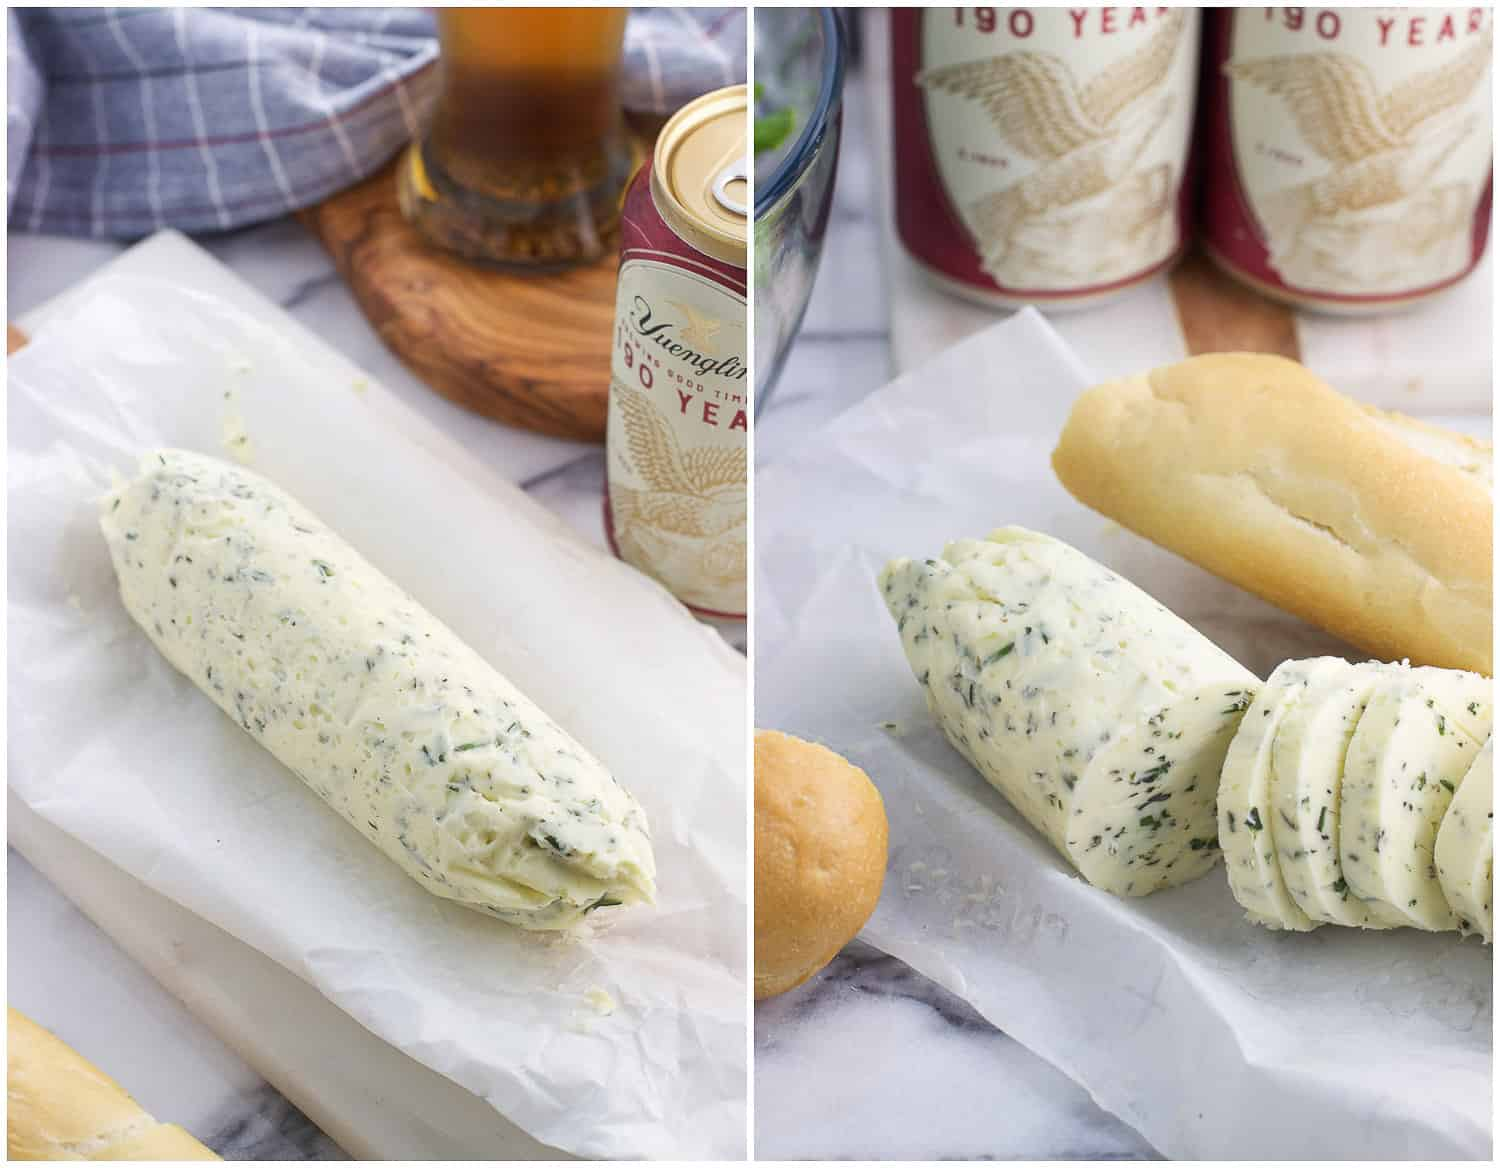 A side-by-side picture of rolled compound butter (left) and sliced compound butter (right)